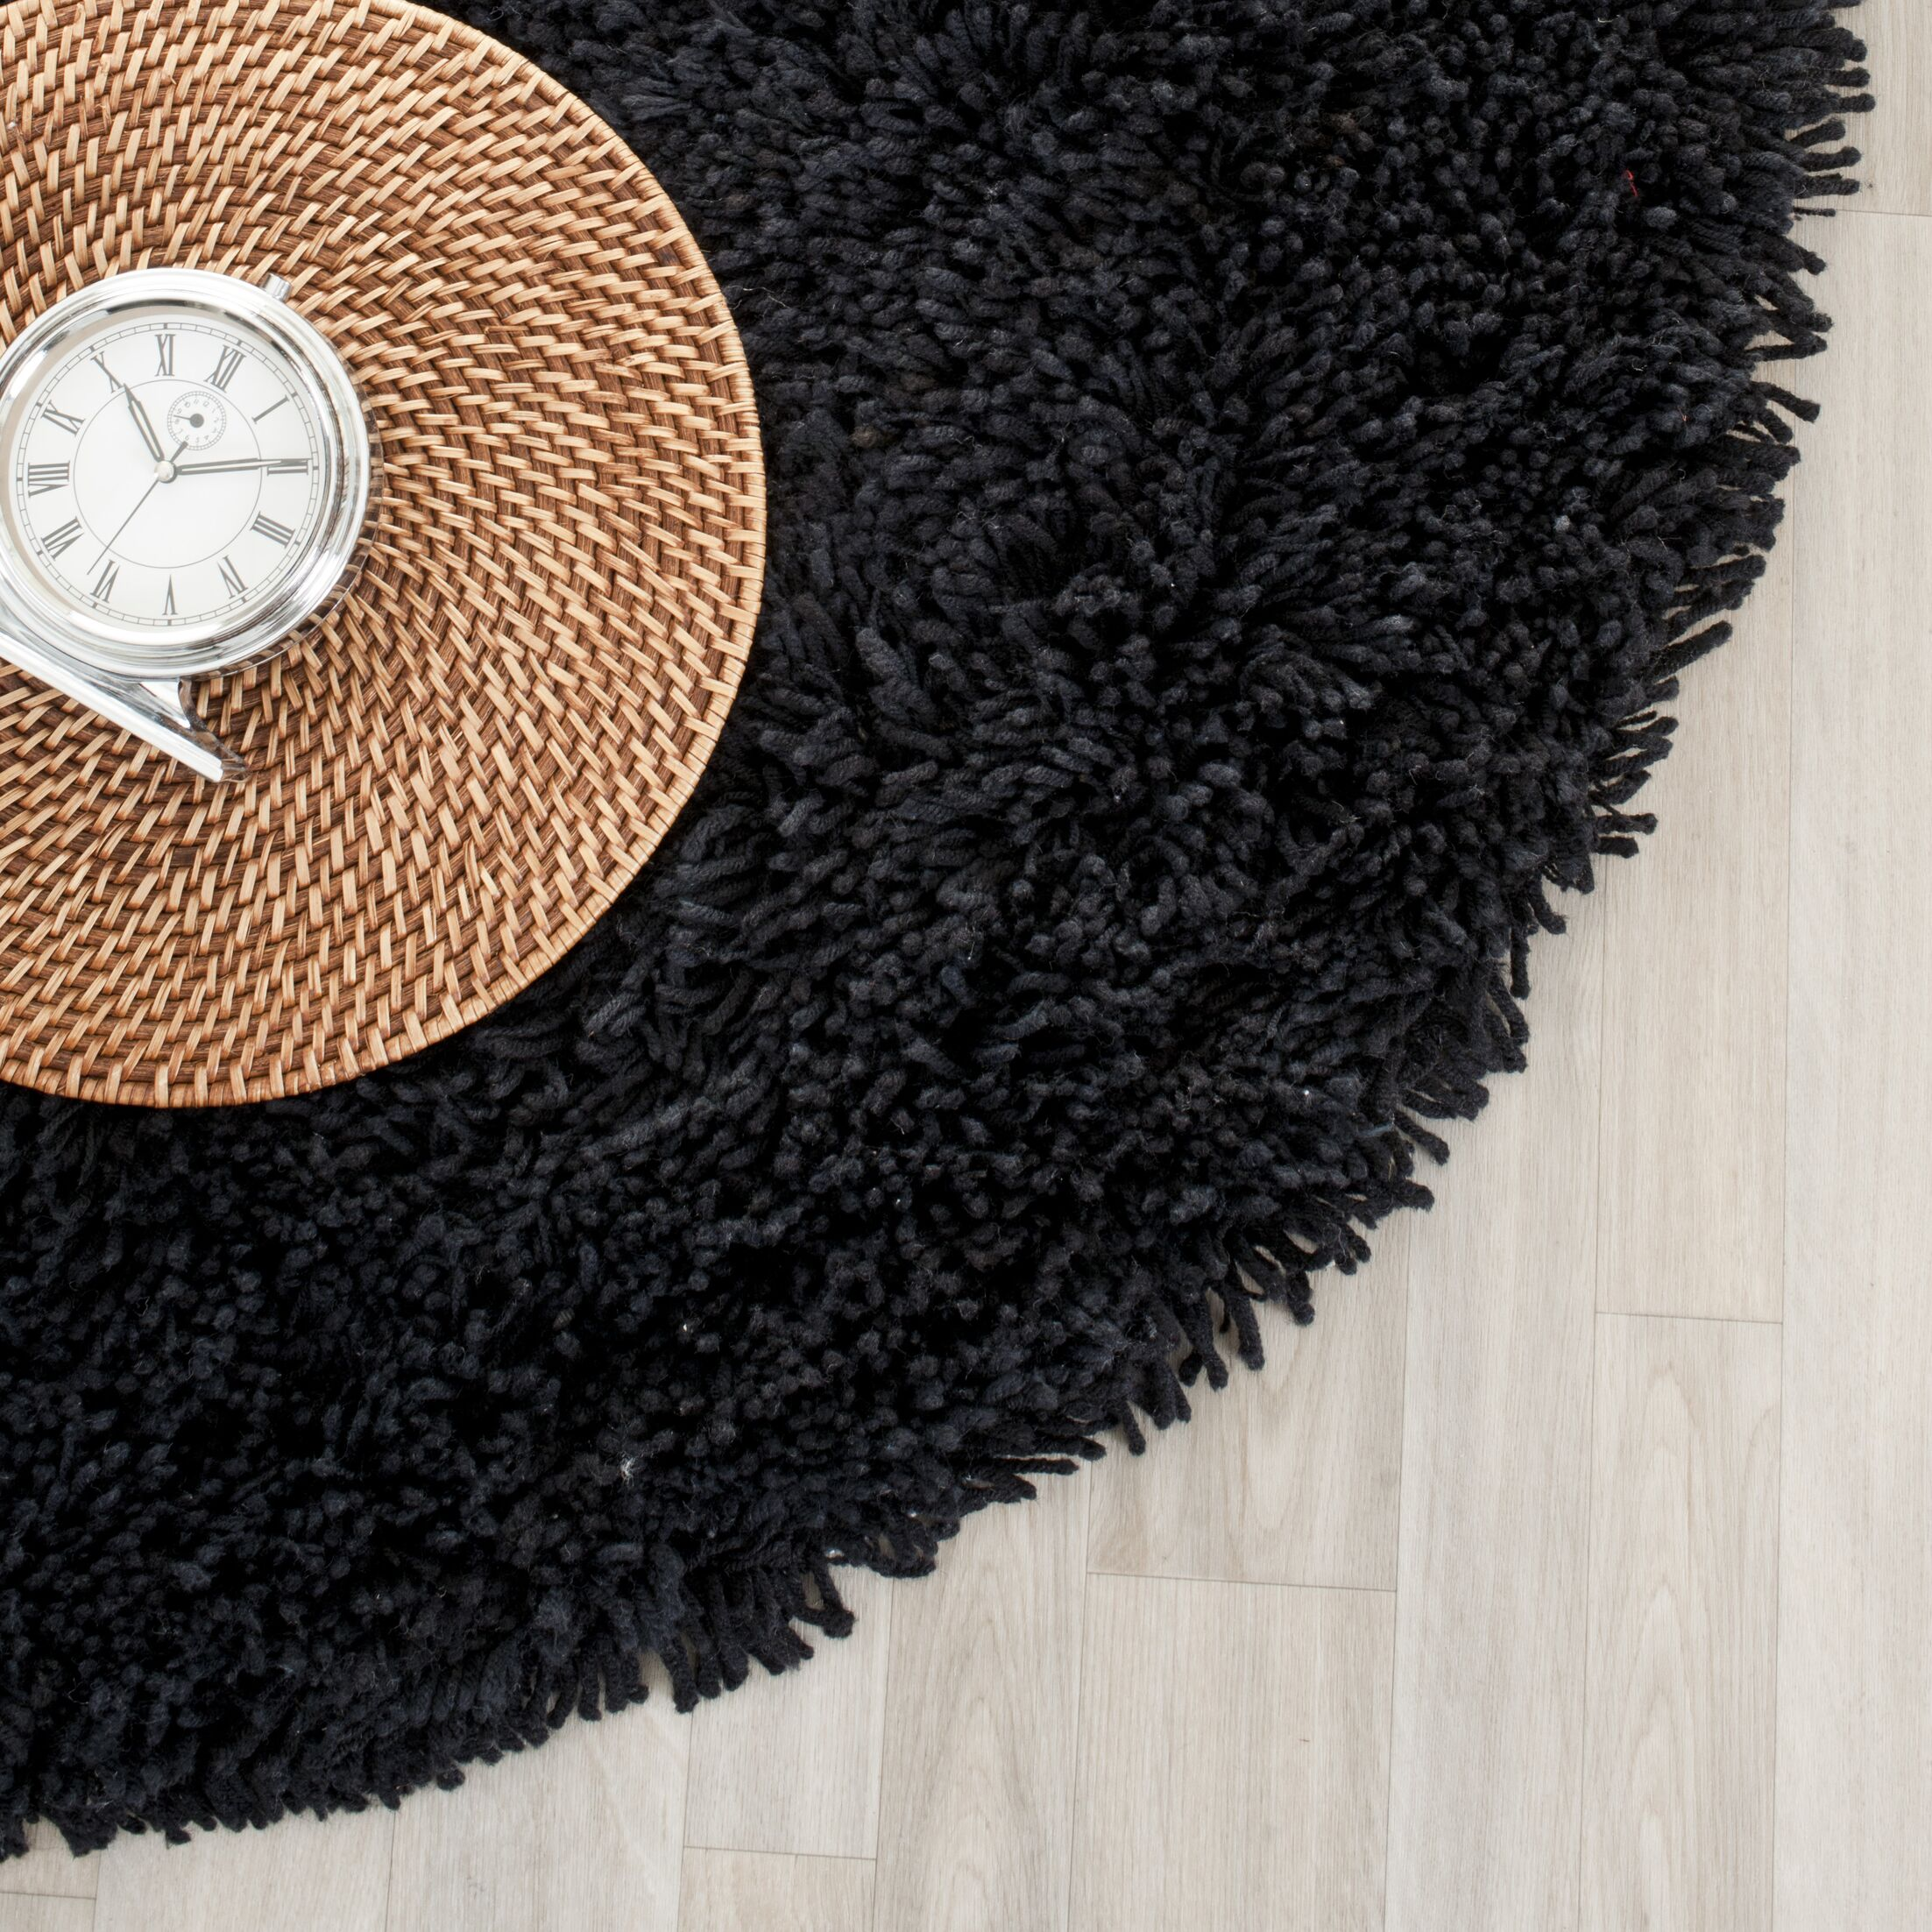 Starr Hill Solid Black Area Rug Rug Size: Round 6'